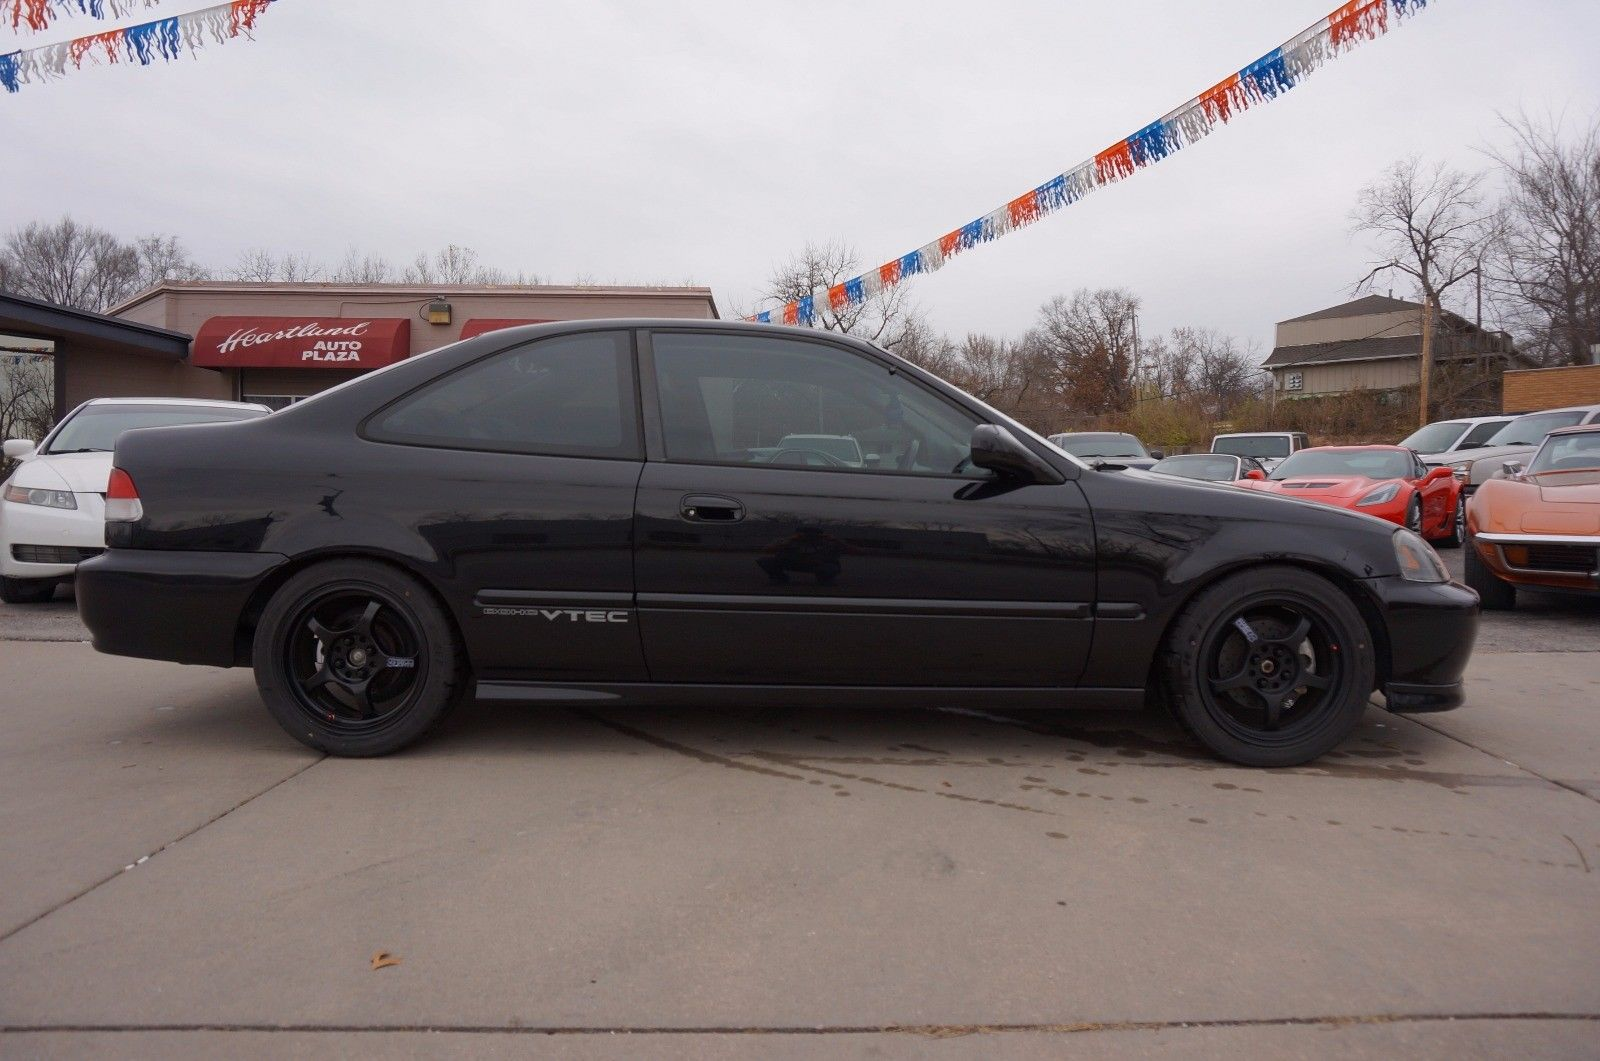 with civic slammed sedan ideas s honda si tracks coupe steven on images dsc all and covering